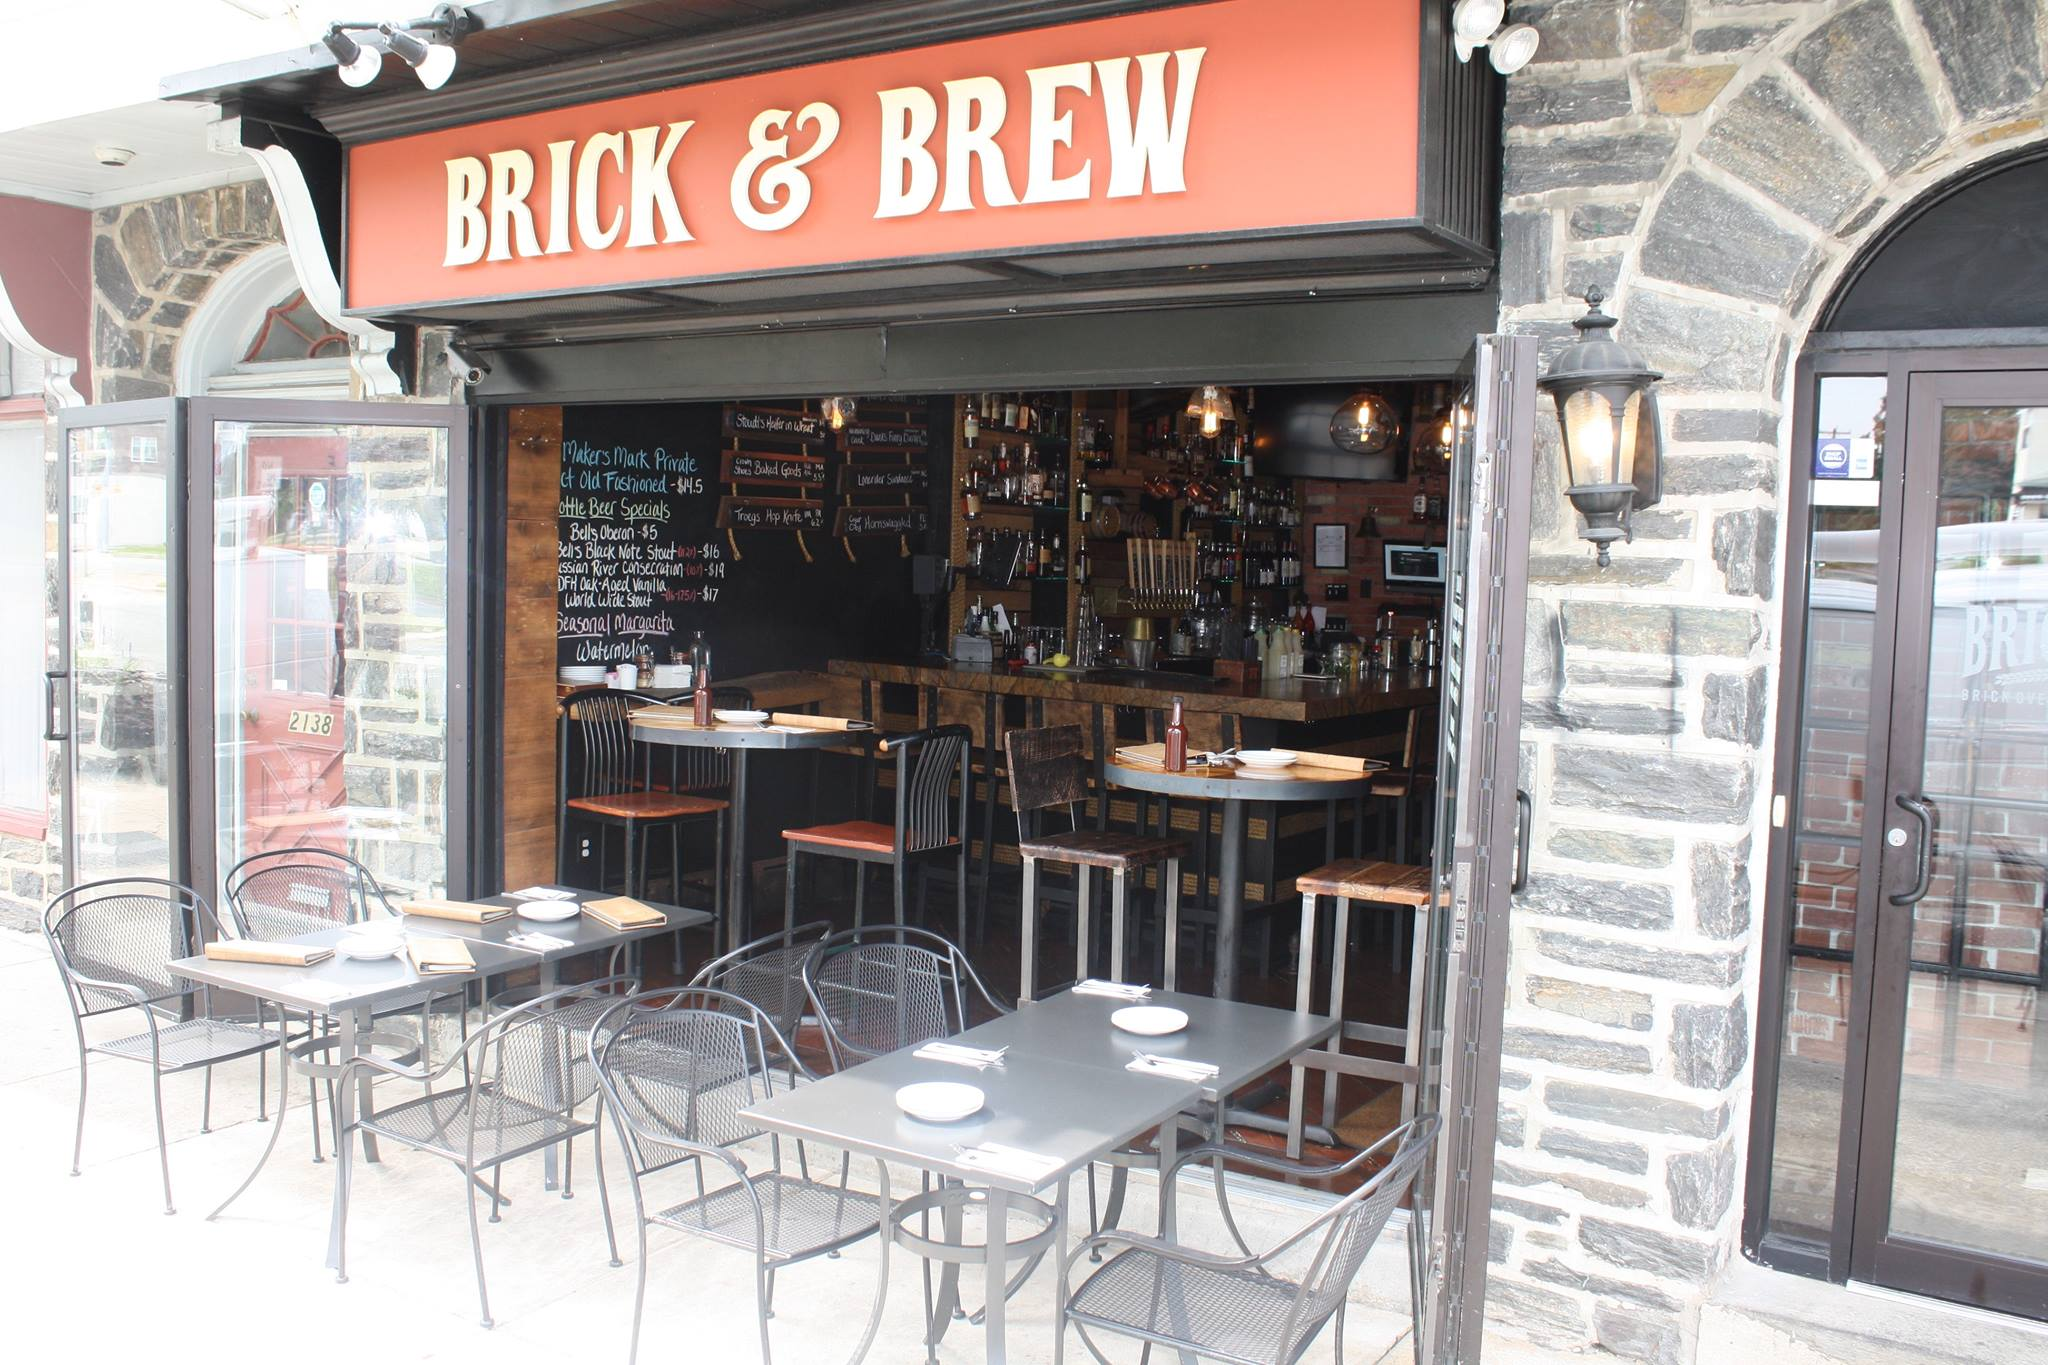 Delco's Brick & Brew Restaurant Brand to Enter Chester County with Location in Malvern